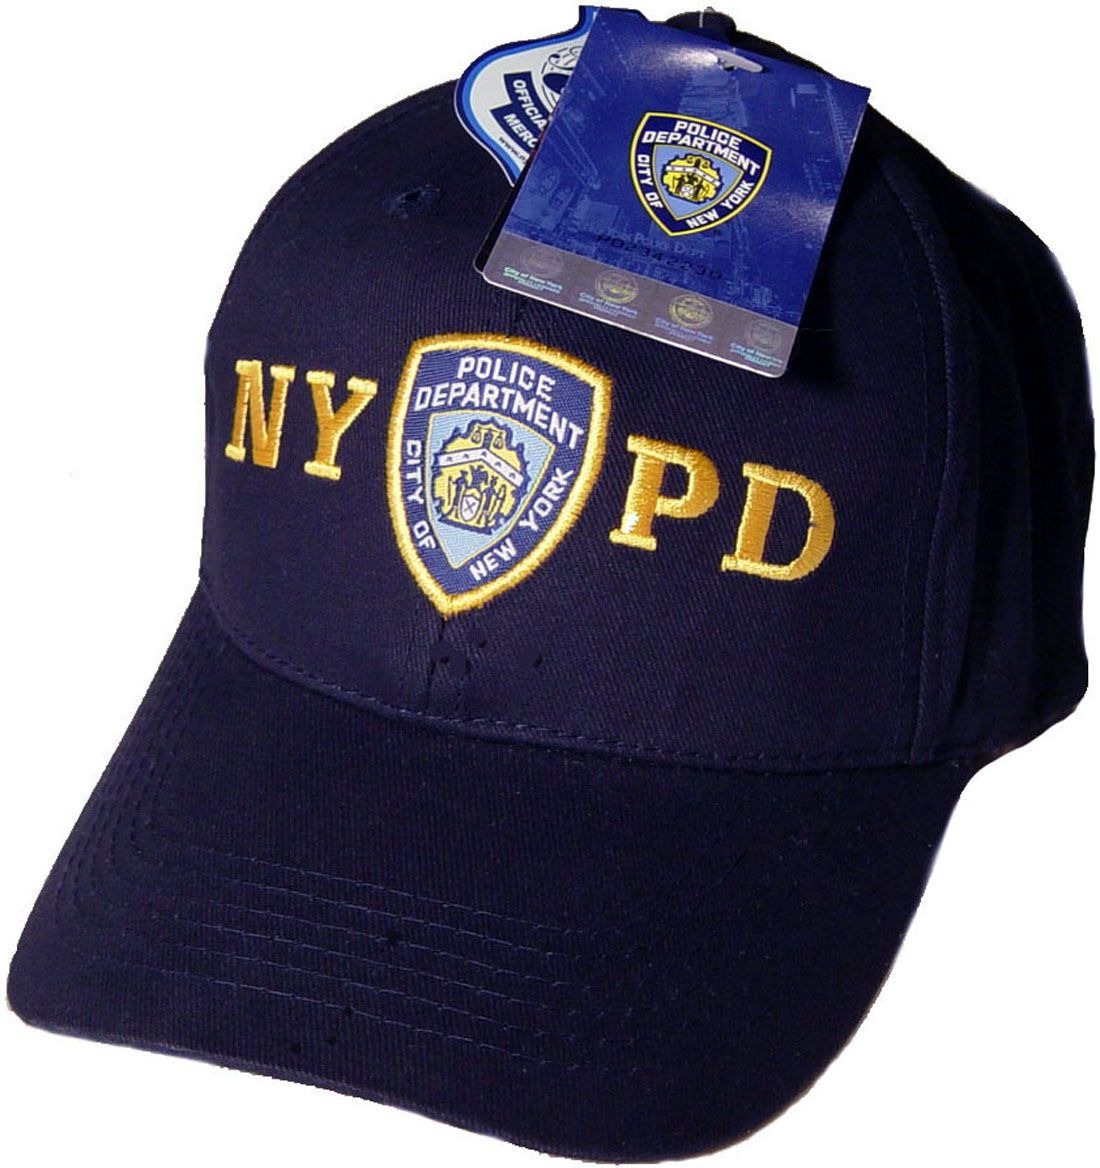 Nypd Baseball Cap Hat Licensed By The York City Police Department ... 26a2c2d5b085